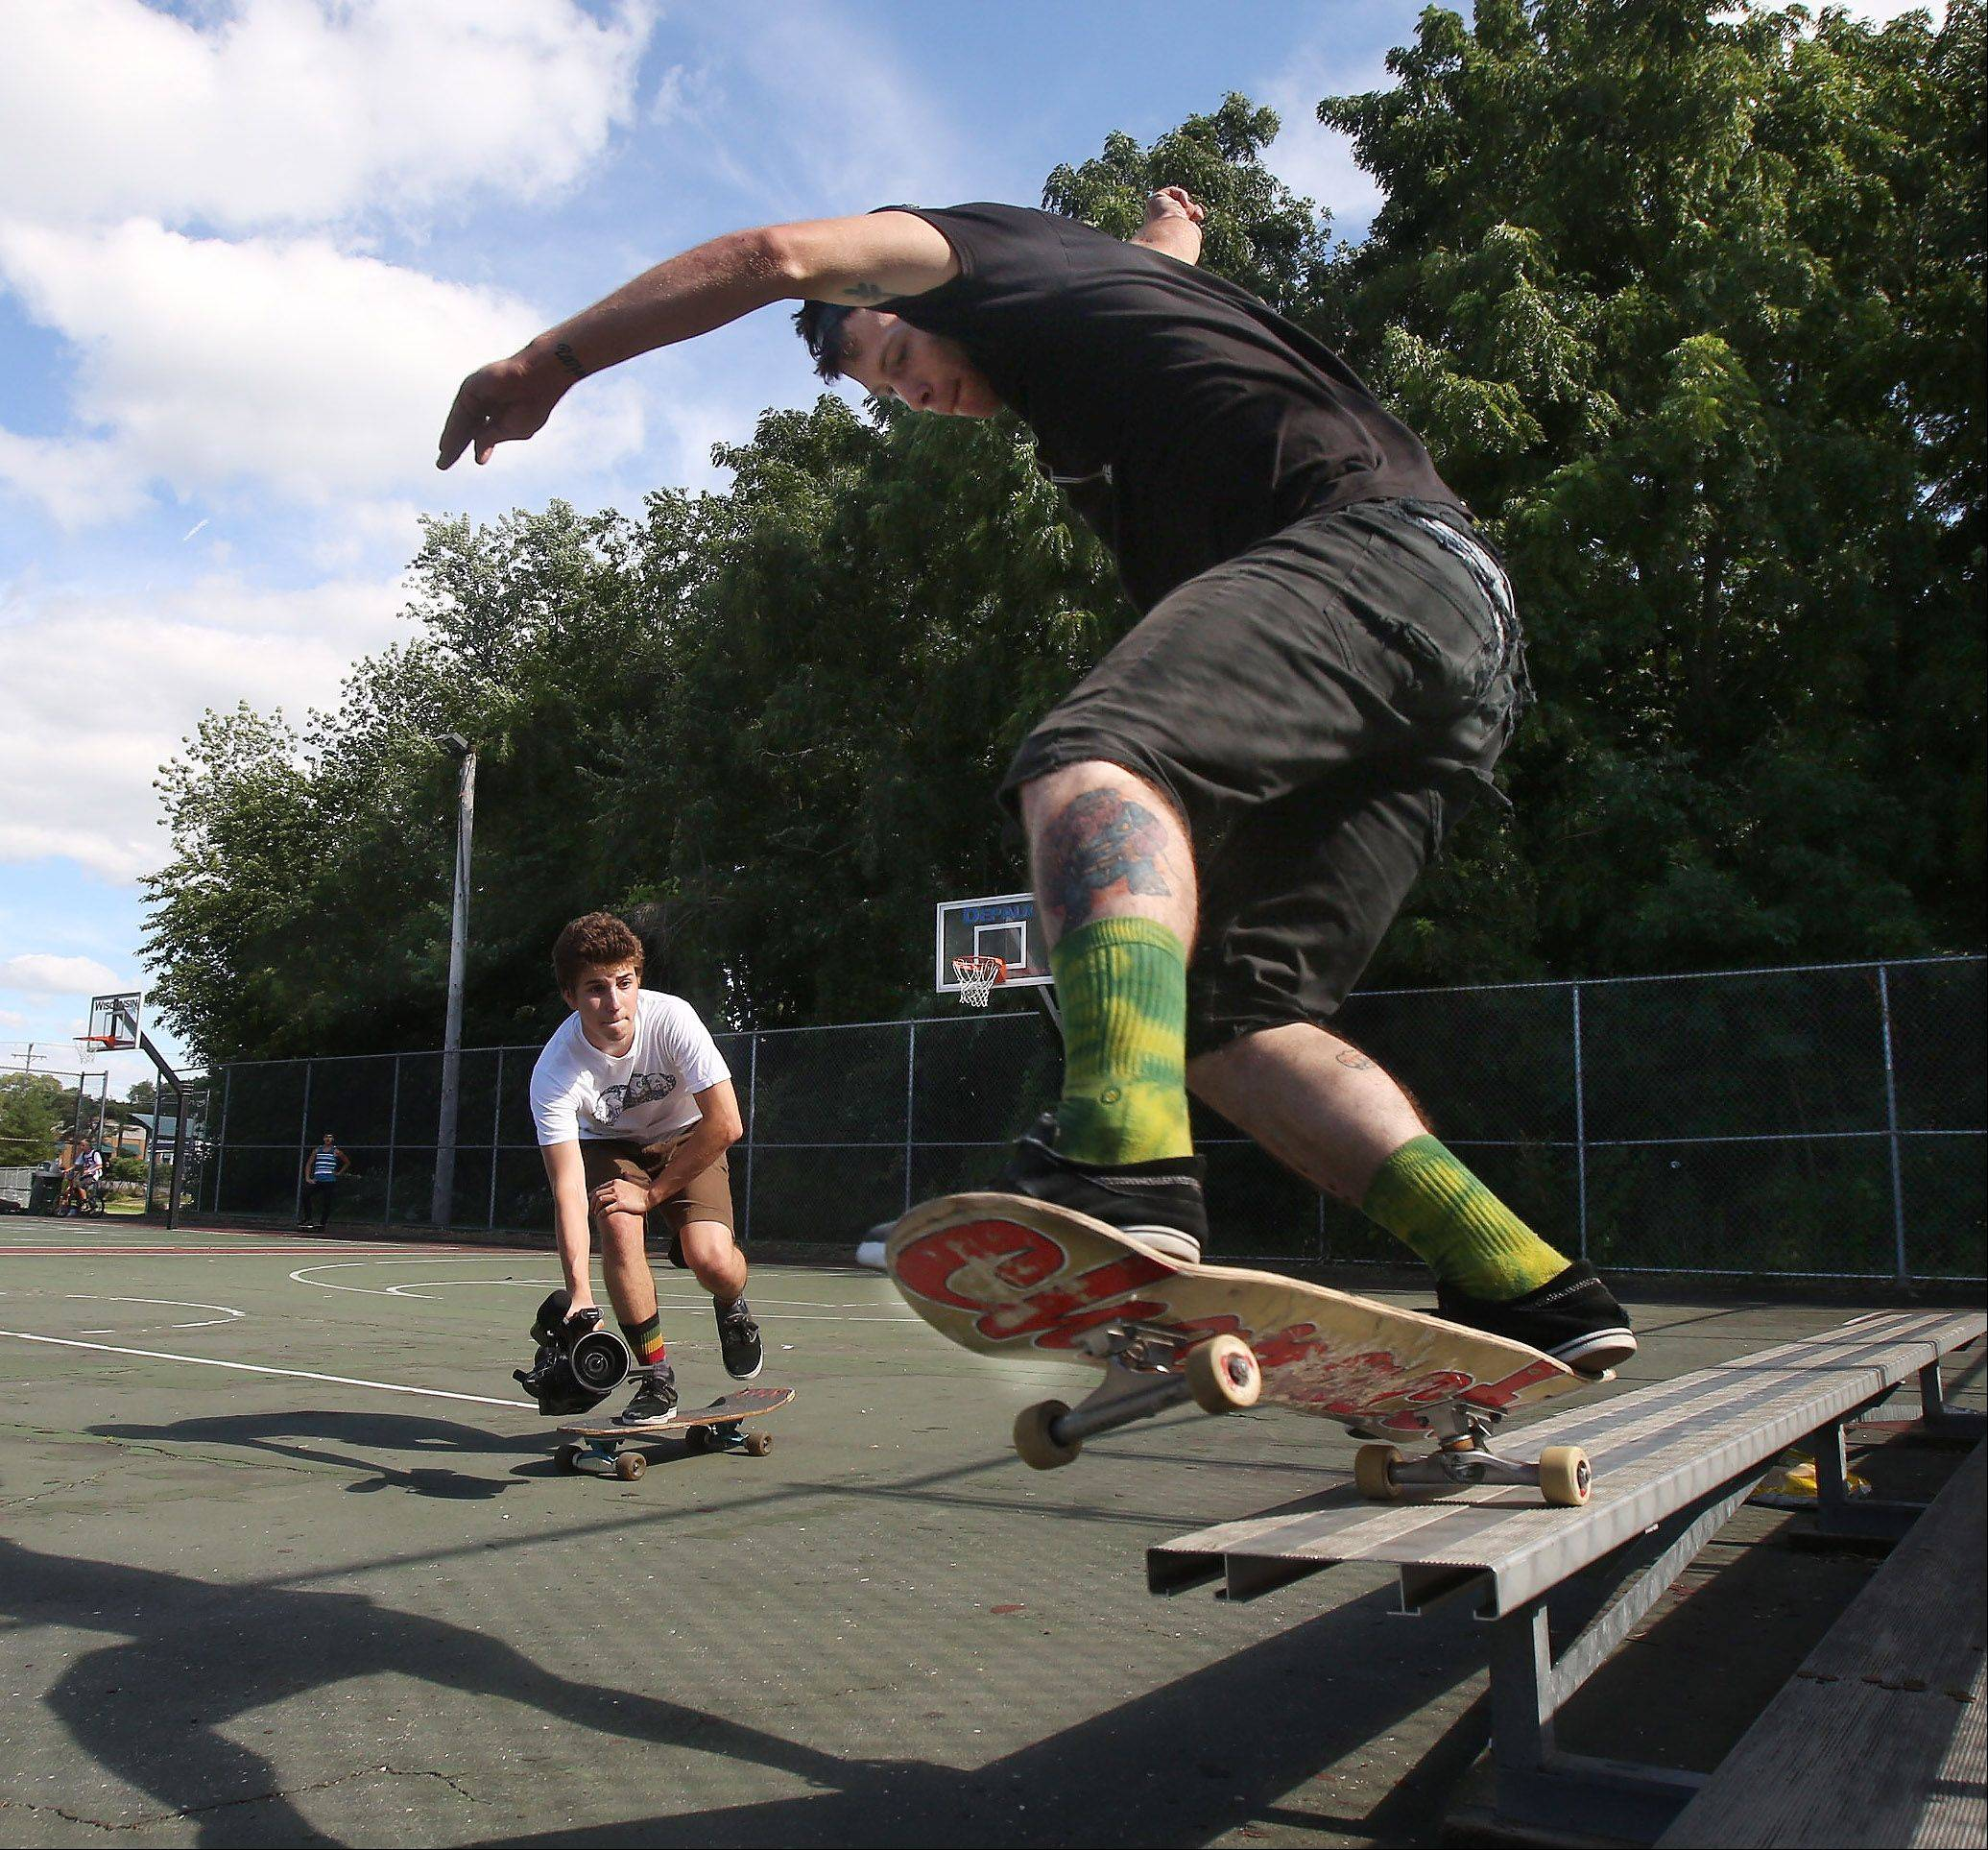 Max Kollman shoots video of street skateboarder Scotty Brooke of McHenry on an outdoor basketball court in McHenry.